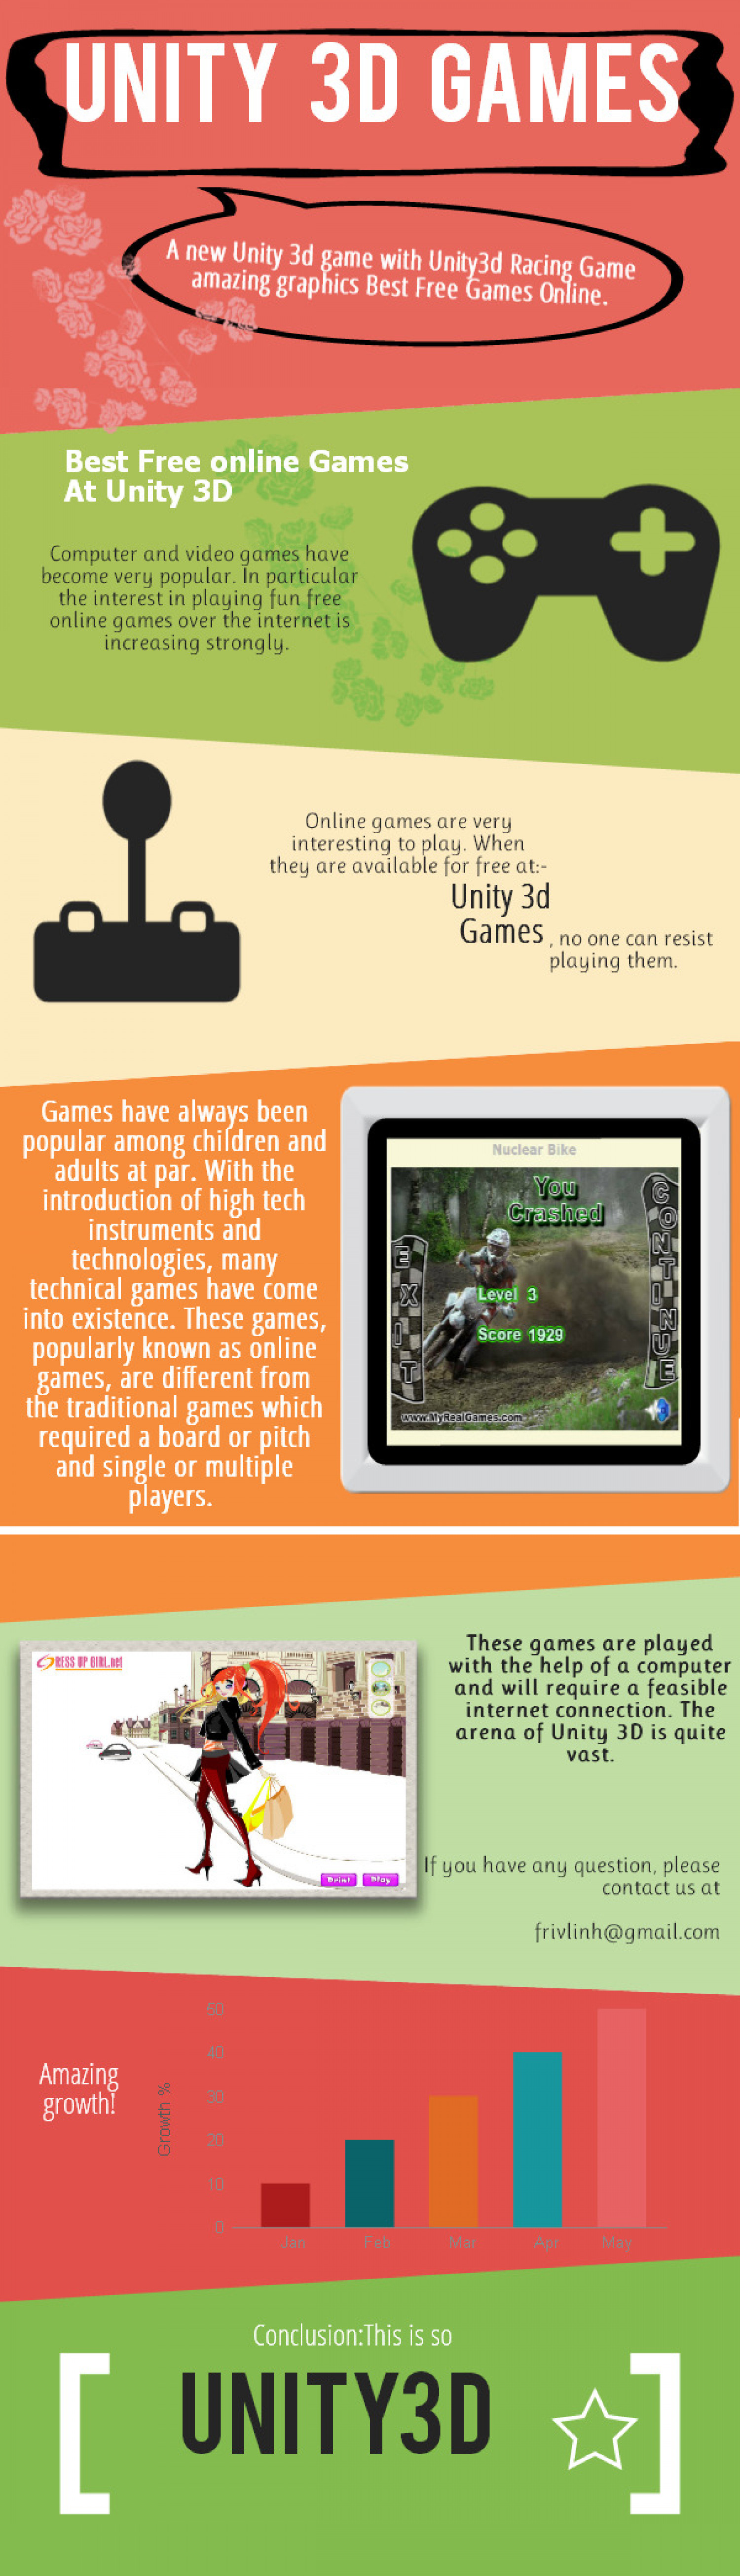 Unity 3d Games Infographic